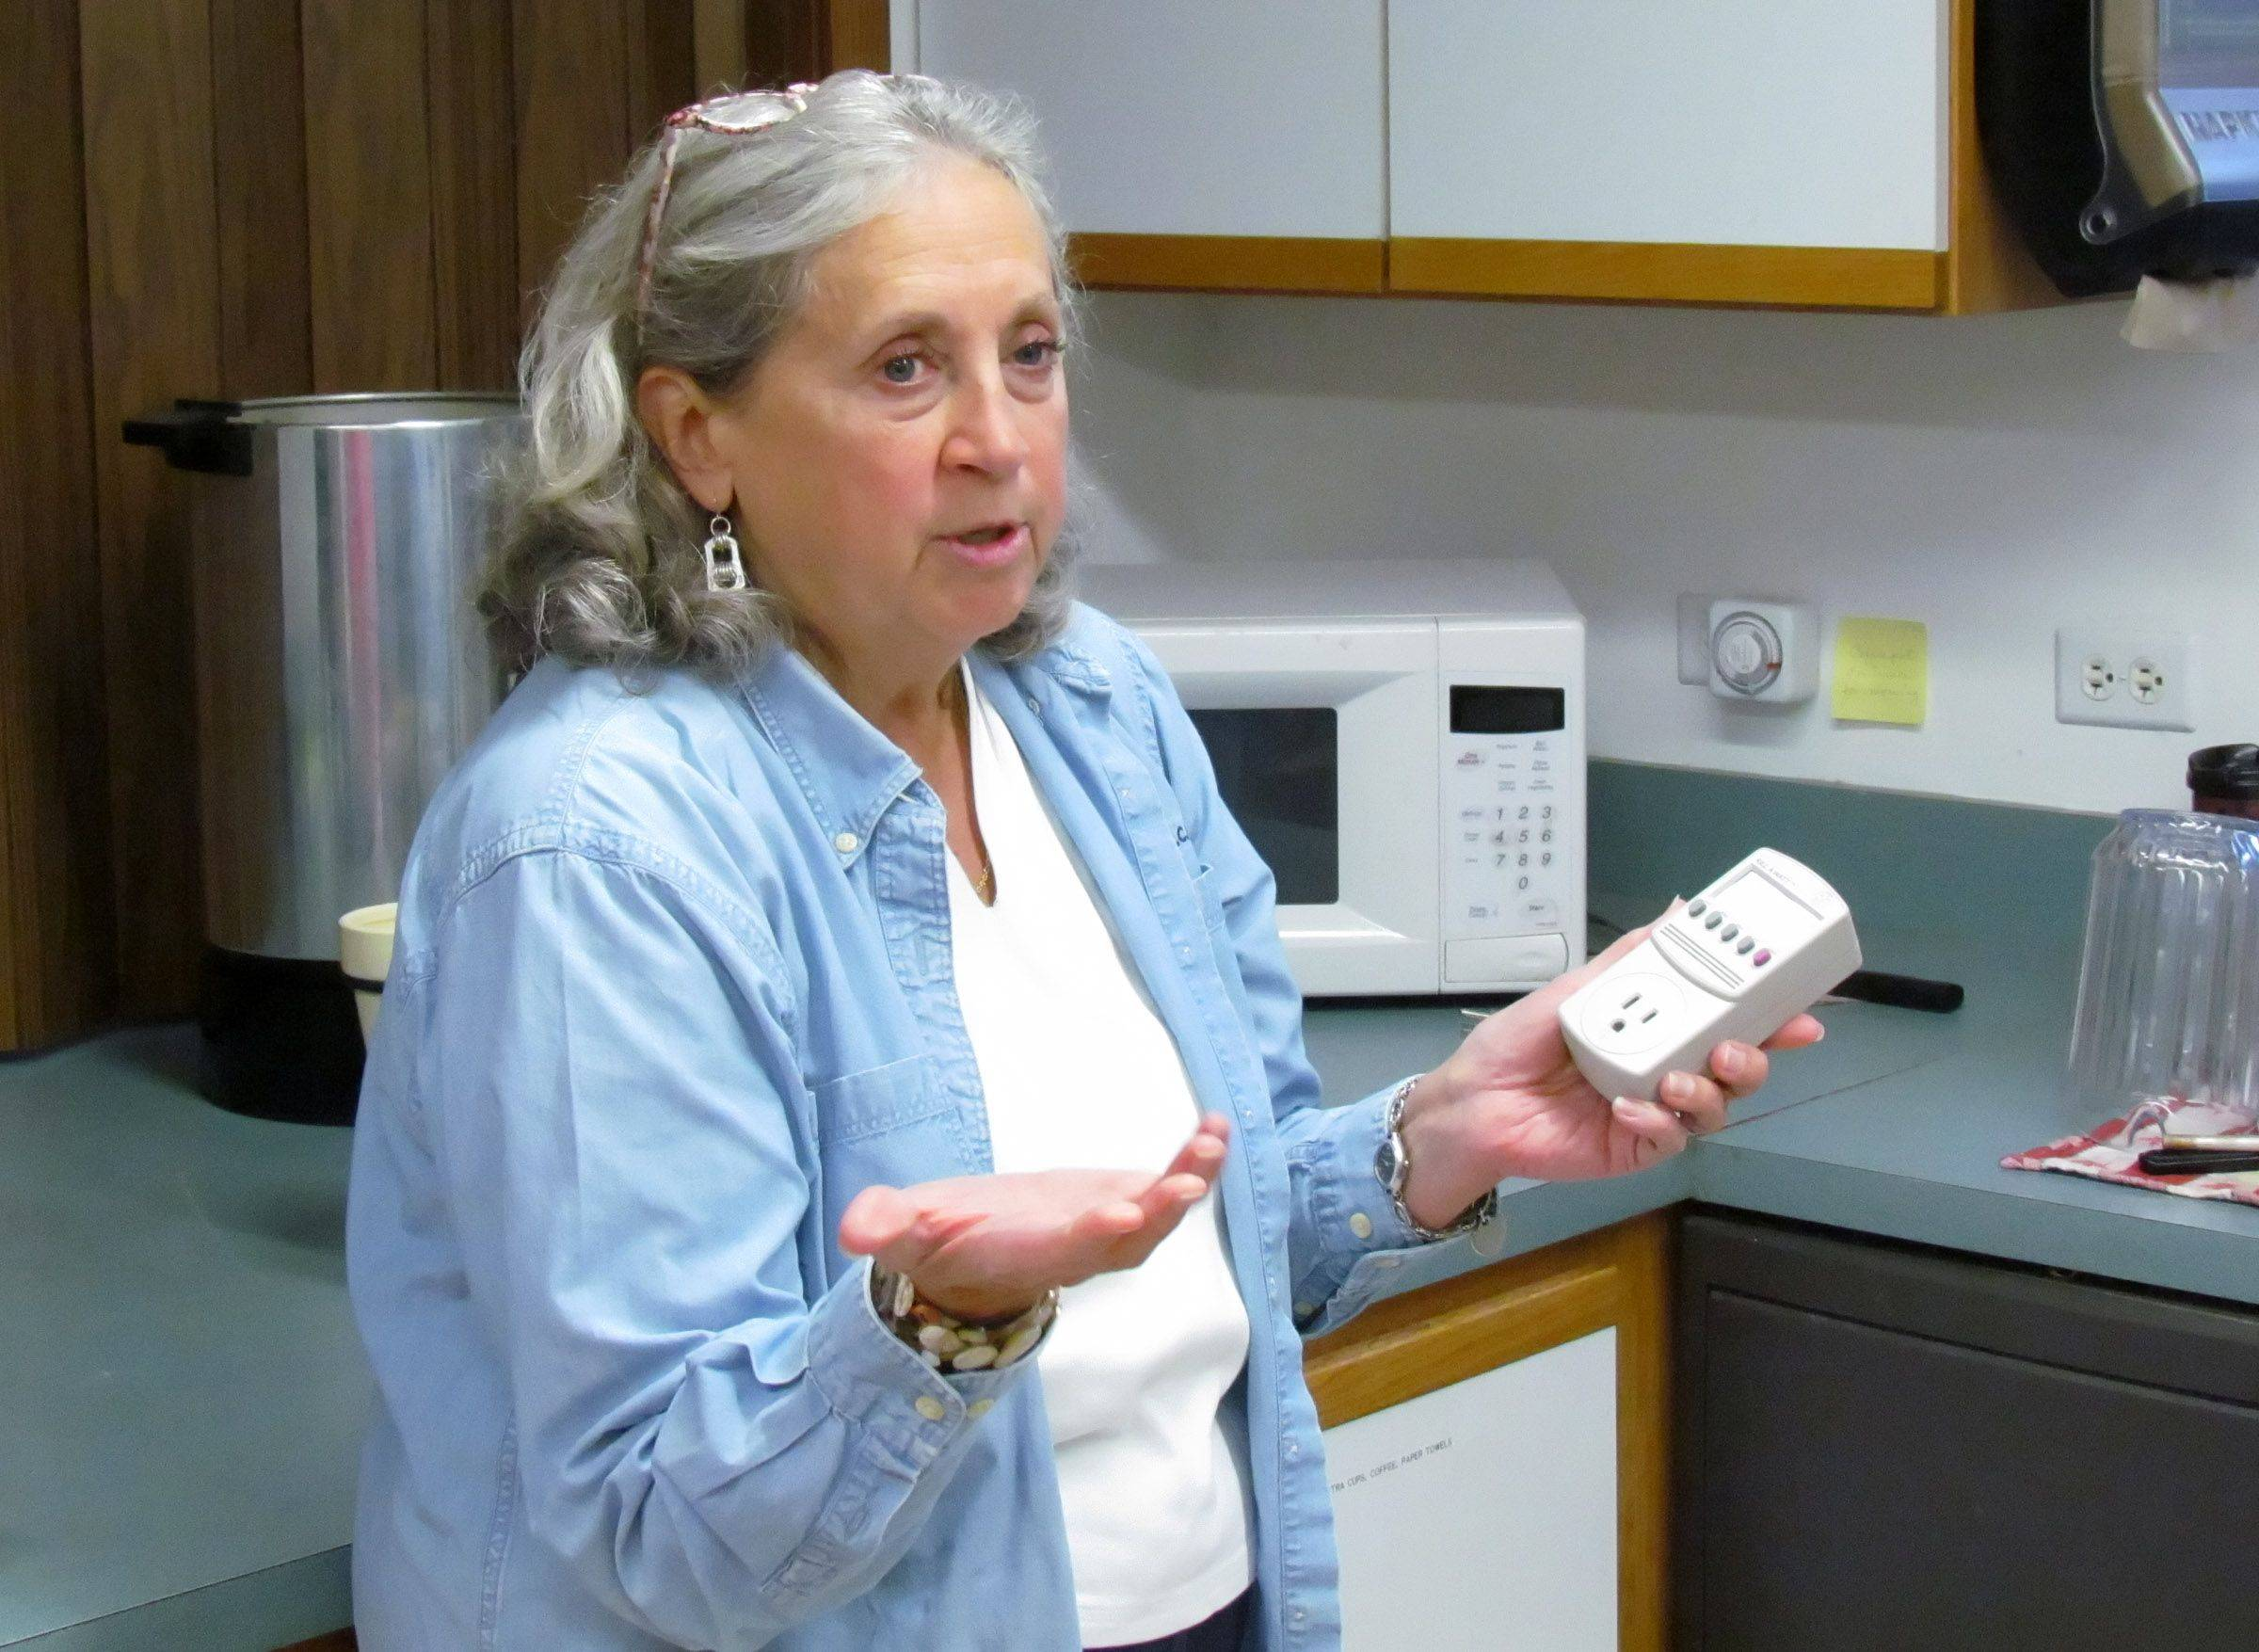 In the kitchen at St. Timothy Lutheran Church in Naperville, Kay McKeen uses a Kill A Watt meter to tell how much power the microwave oven uses even when it is off.